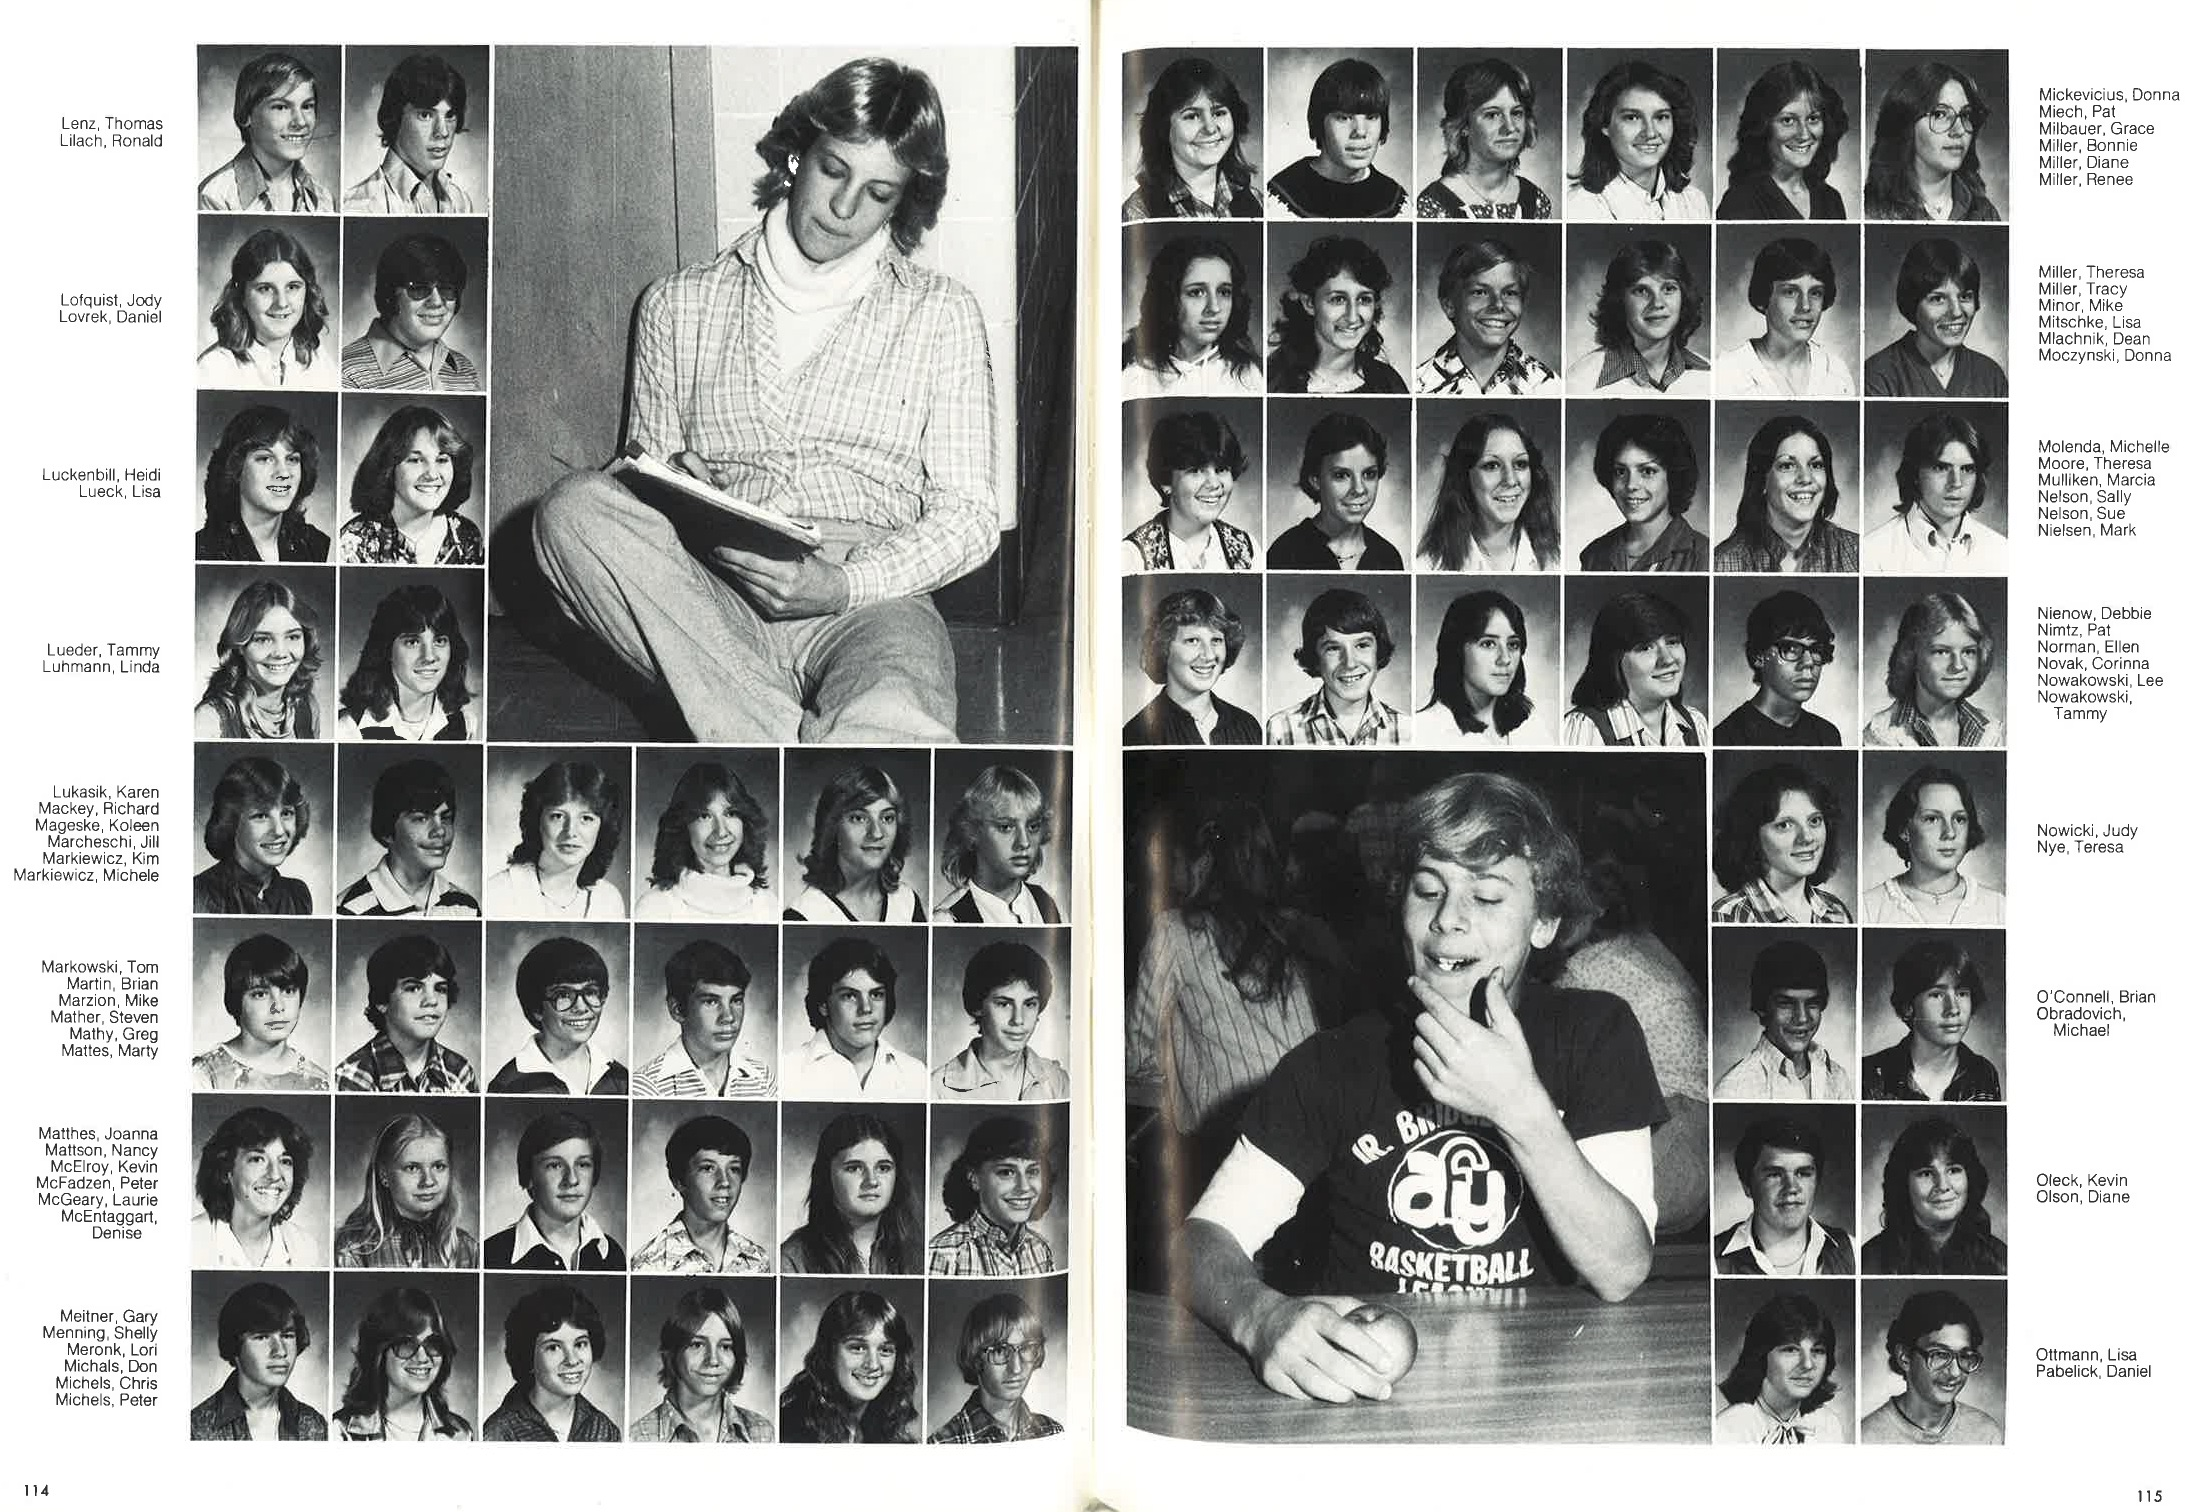 1980_Yearbook_114.jpg